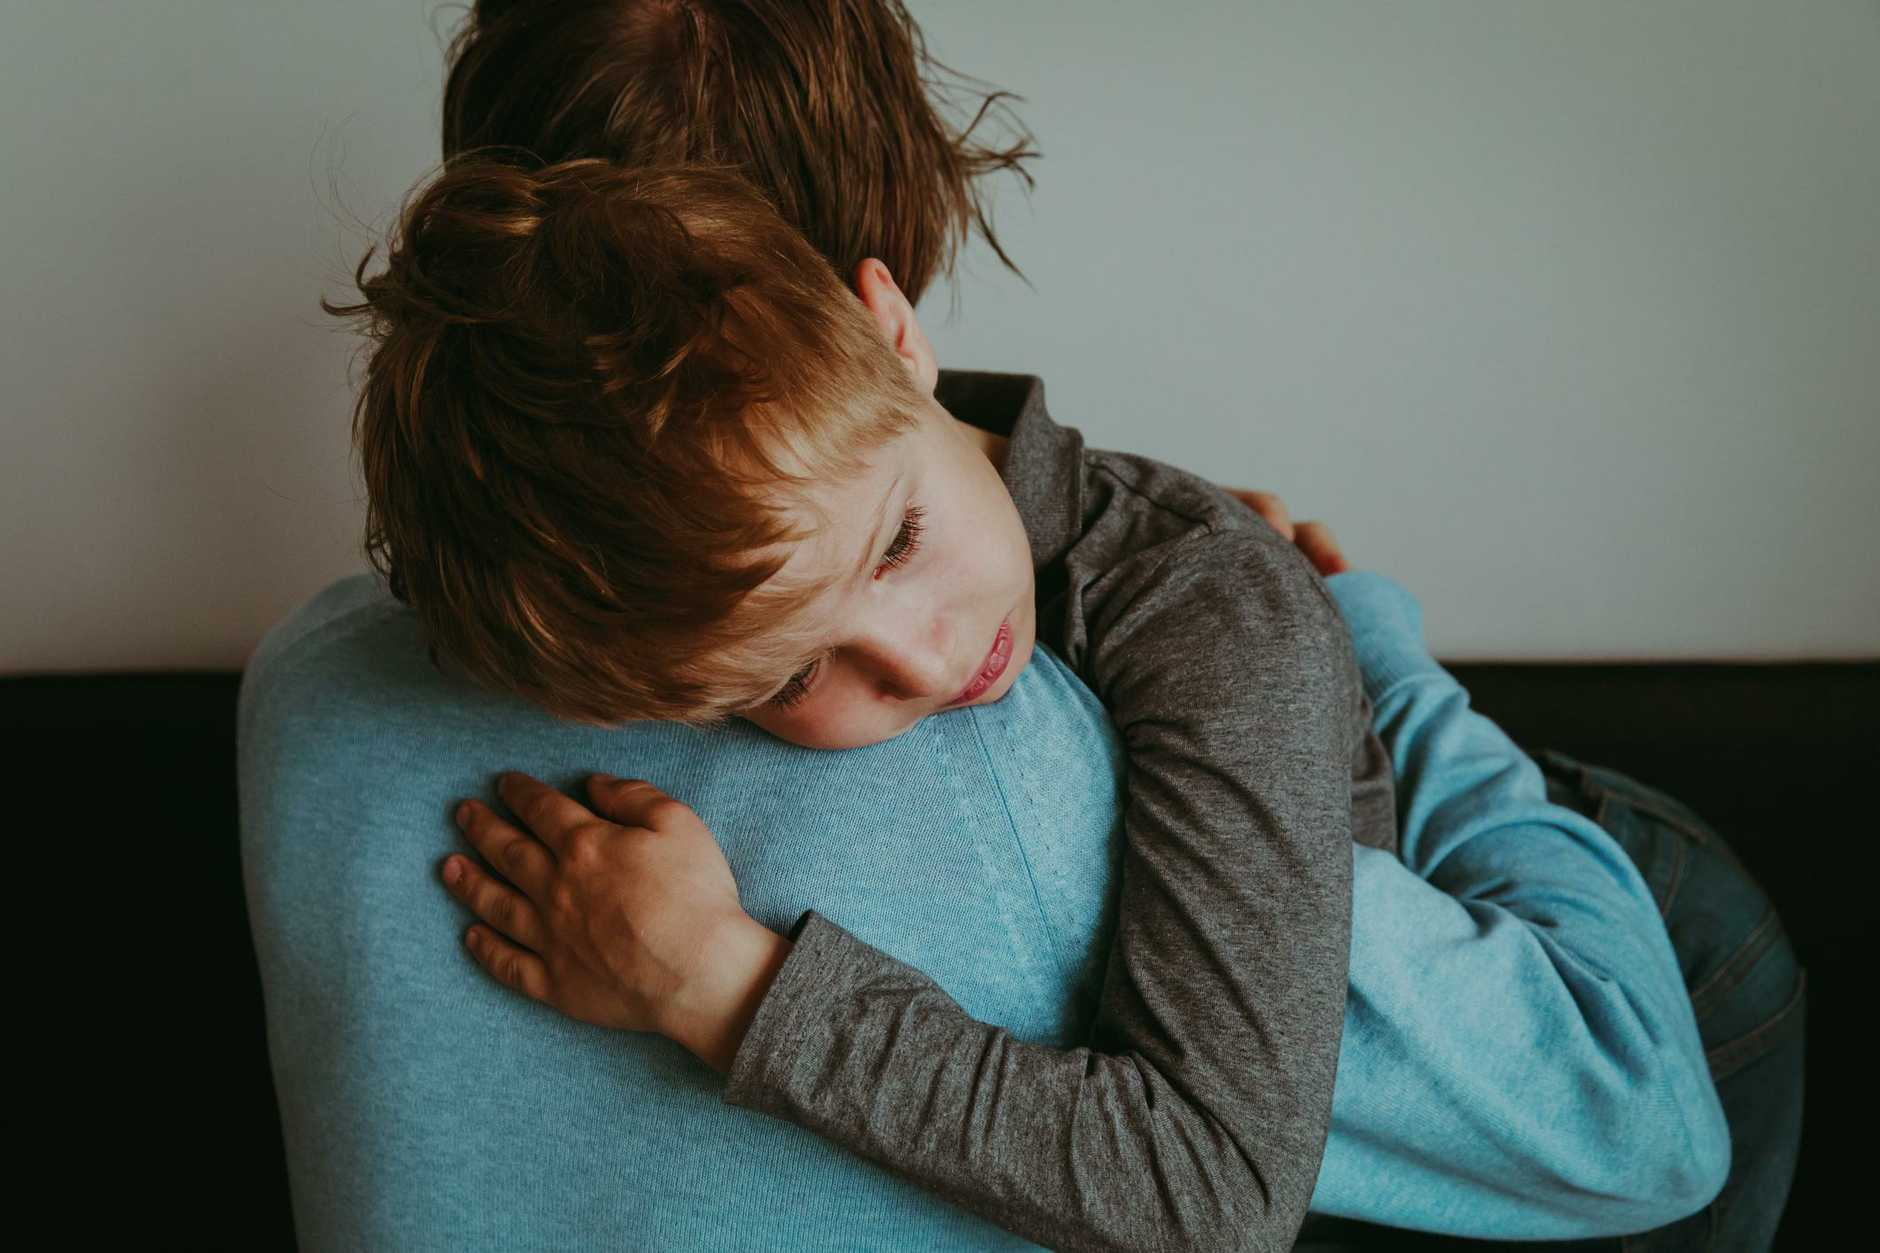 Never underestimate the value of a long and loving hug.